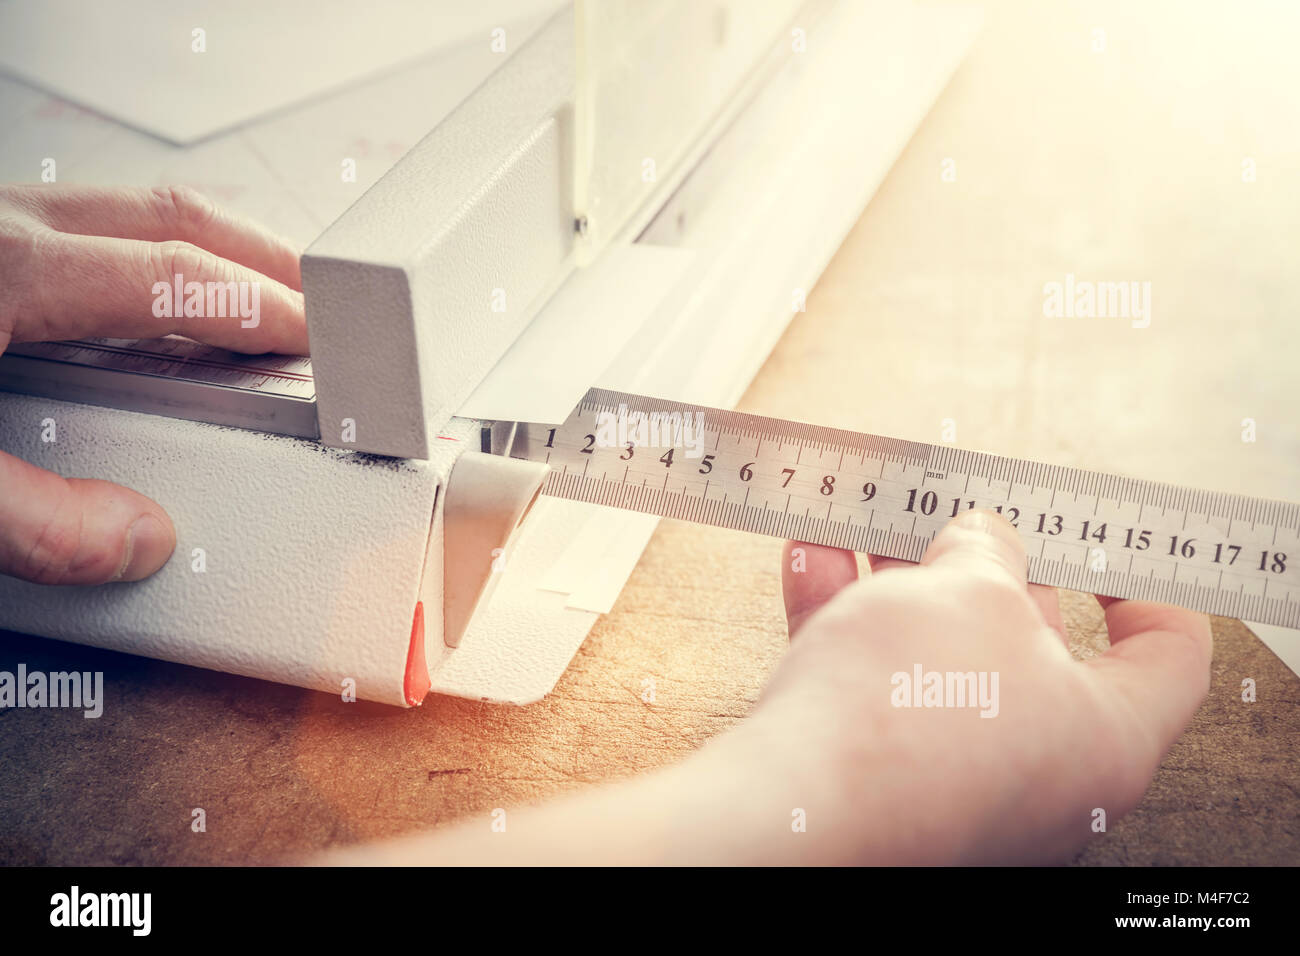 Man does measuring with slide calliper in paper cutter - Stock Image